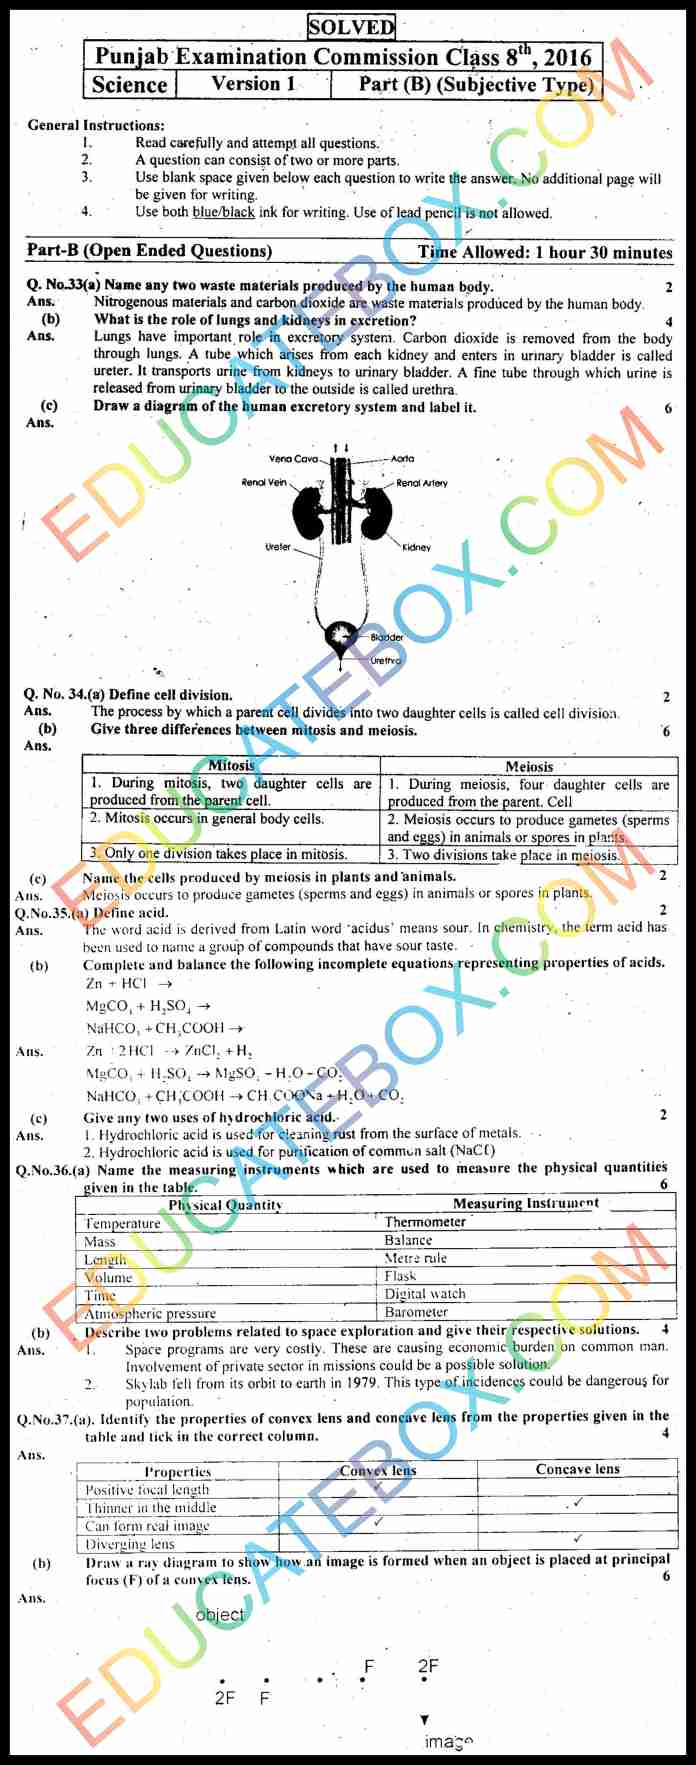 Past Paper 8th Class Science 2016 Solved Paper Punjab Board (PEC) Subjective Type Version 1